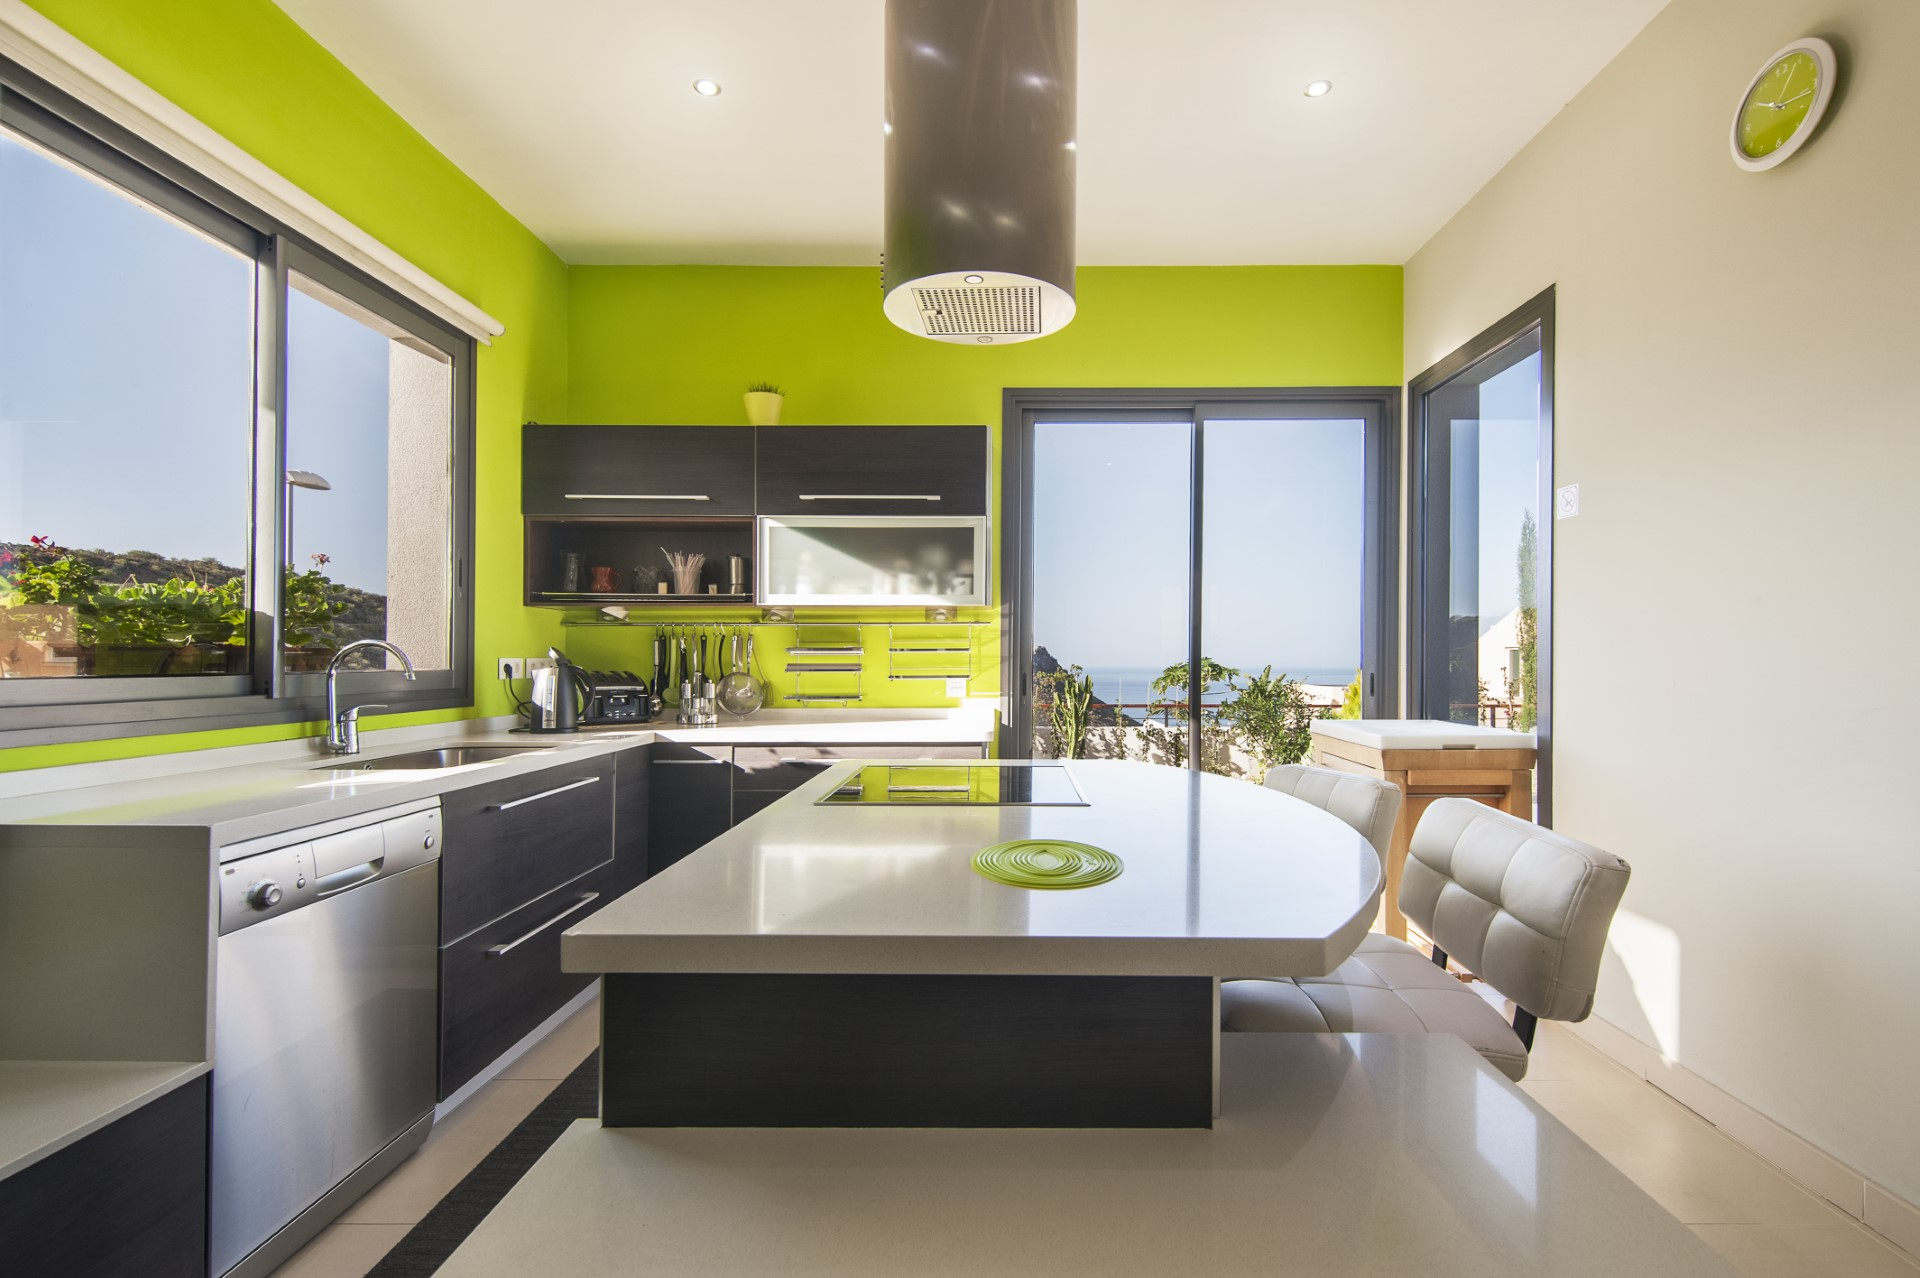 This trendy modern beachhouse theme uses a bright neon green color scheme that helps build excitement every time you walk in. This isn't the decor for the faint of heart, but personally, I would totally go for it.